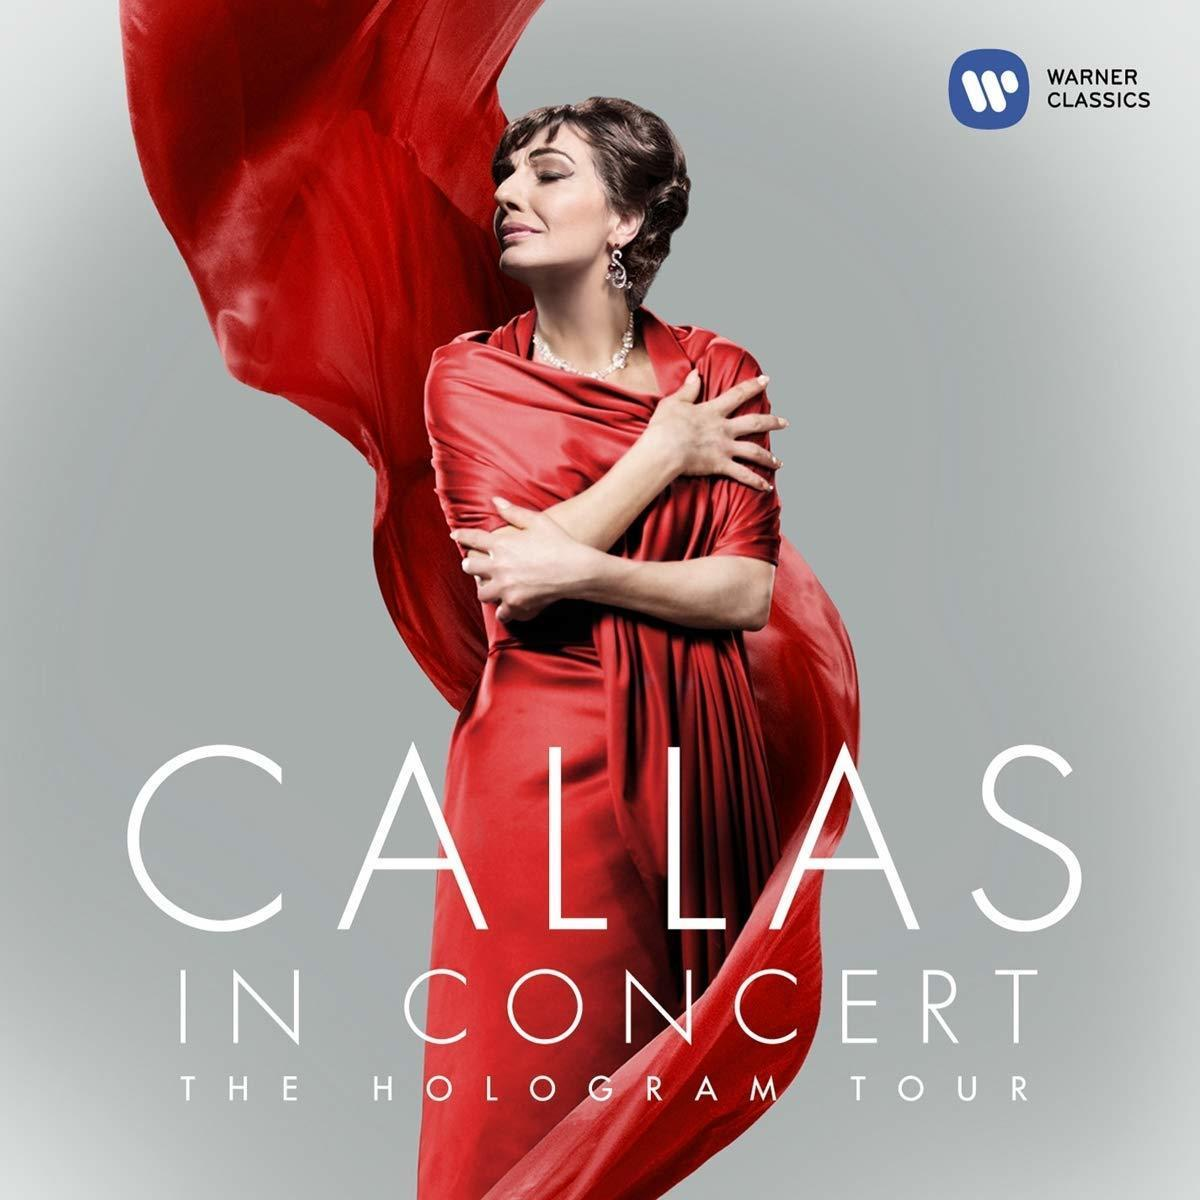 Callas in Concert: The Hologram Tour